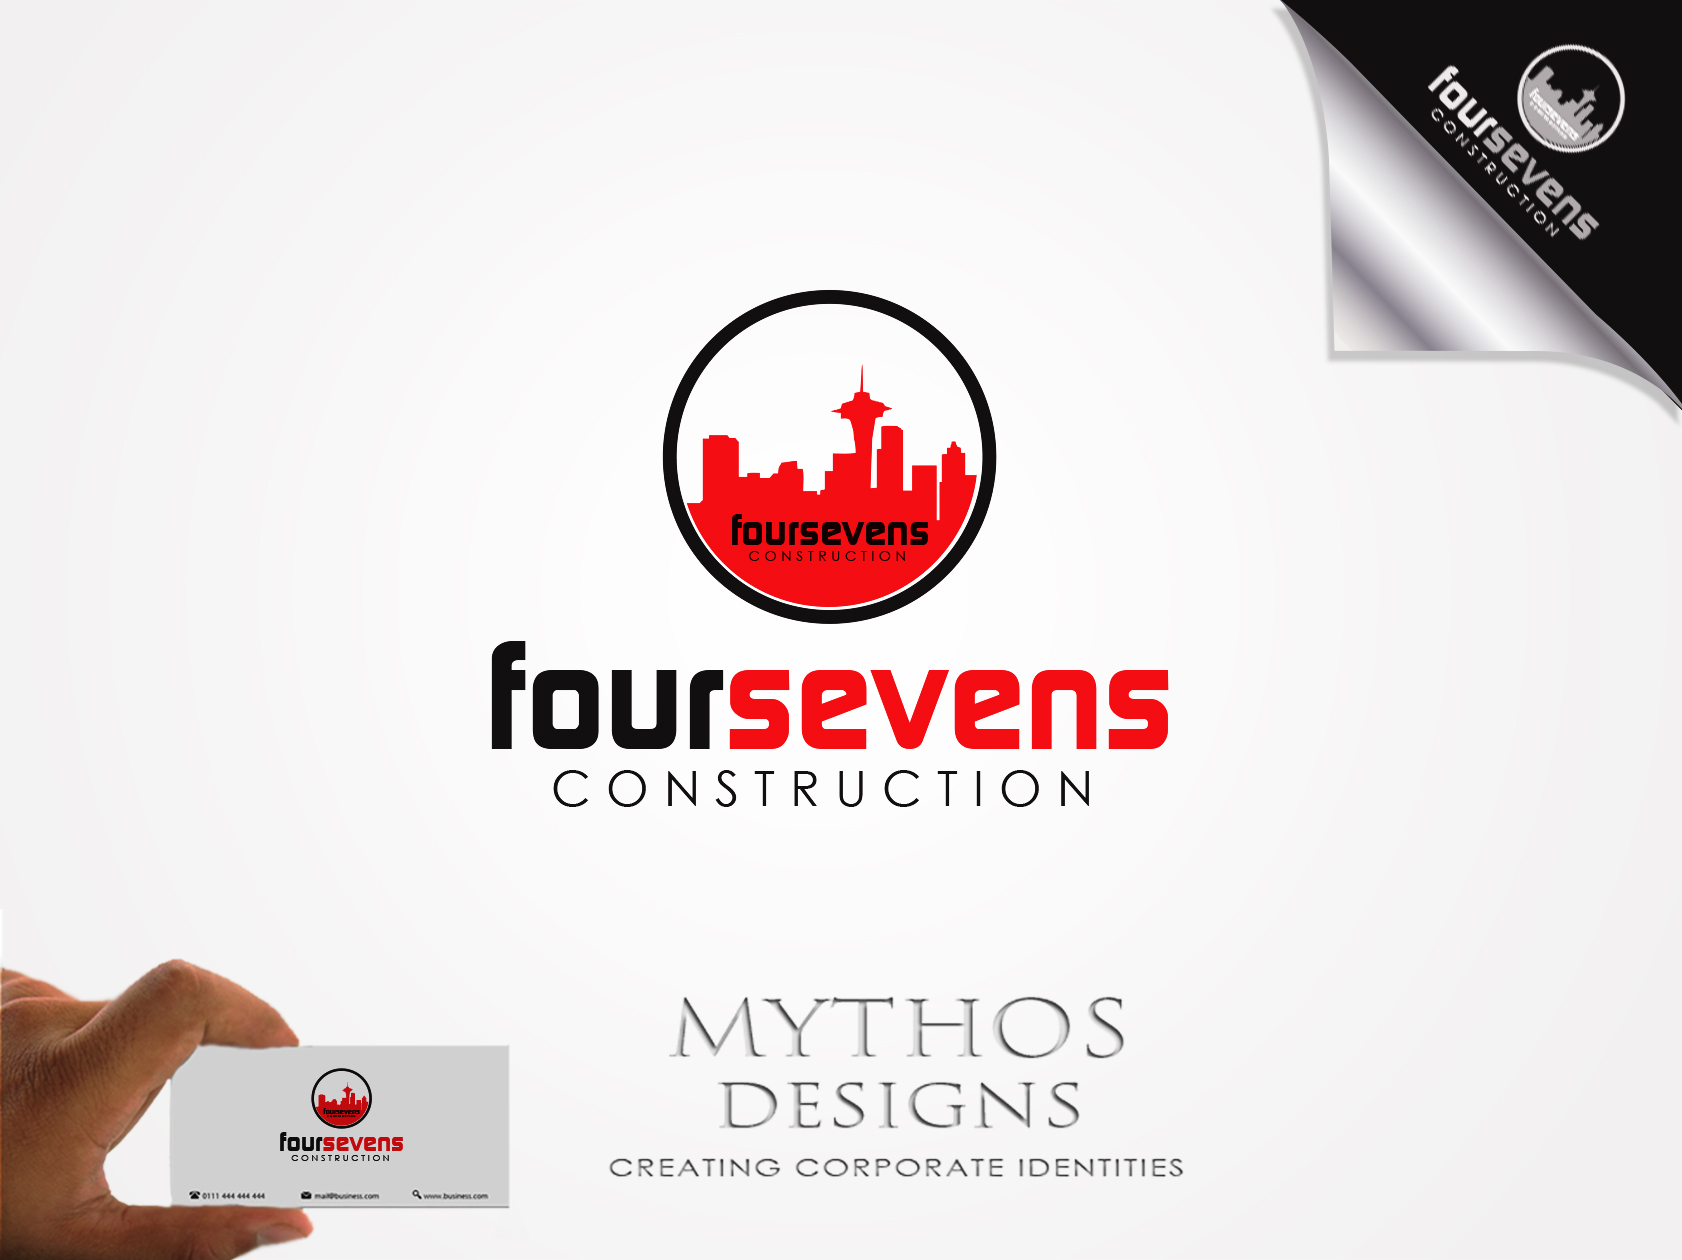 Logo Design by Mythos Designs - Entry No. 88 in the Logo Design Contest New Logo Design for foursevens.